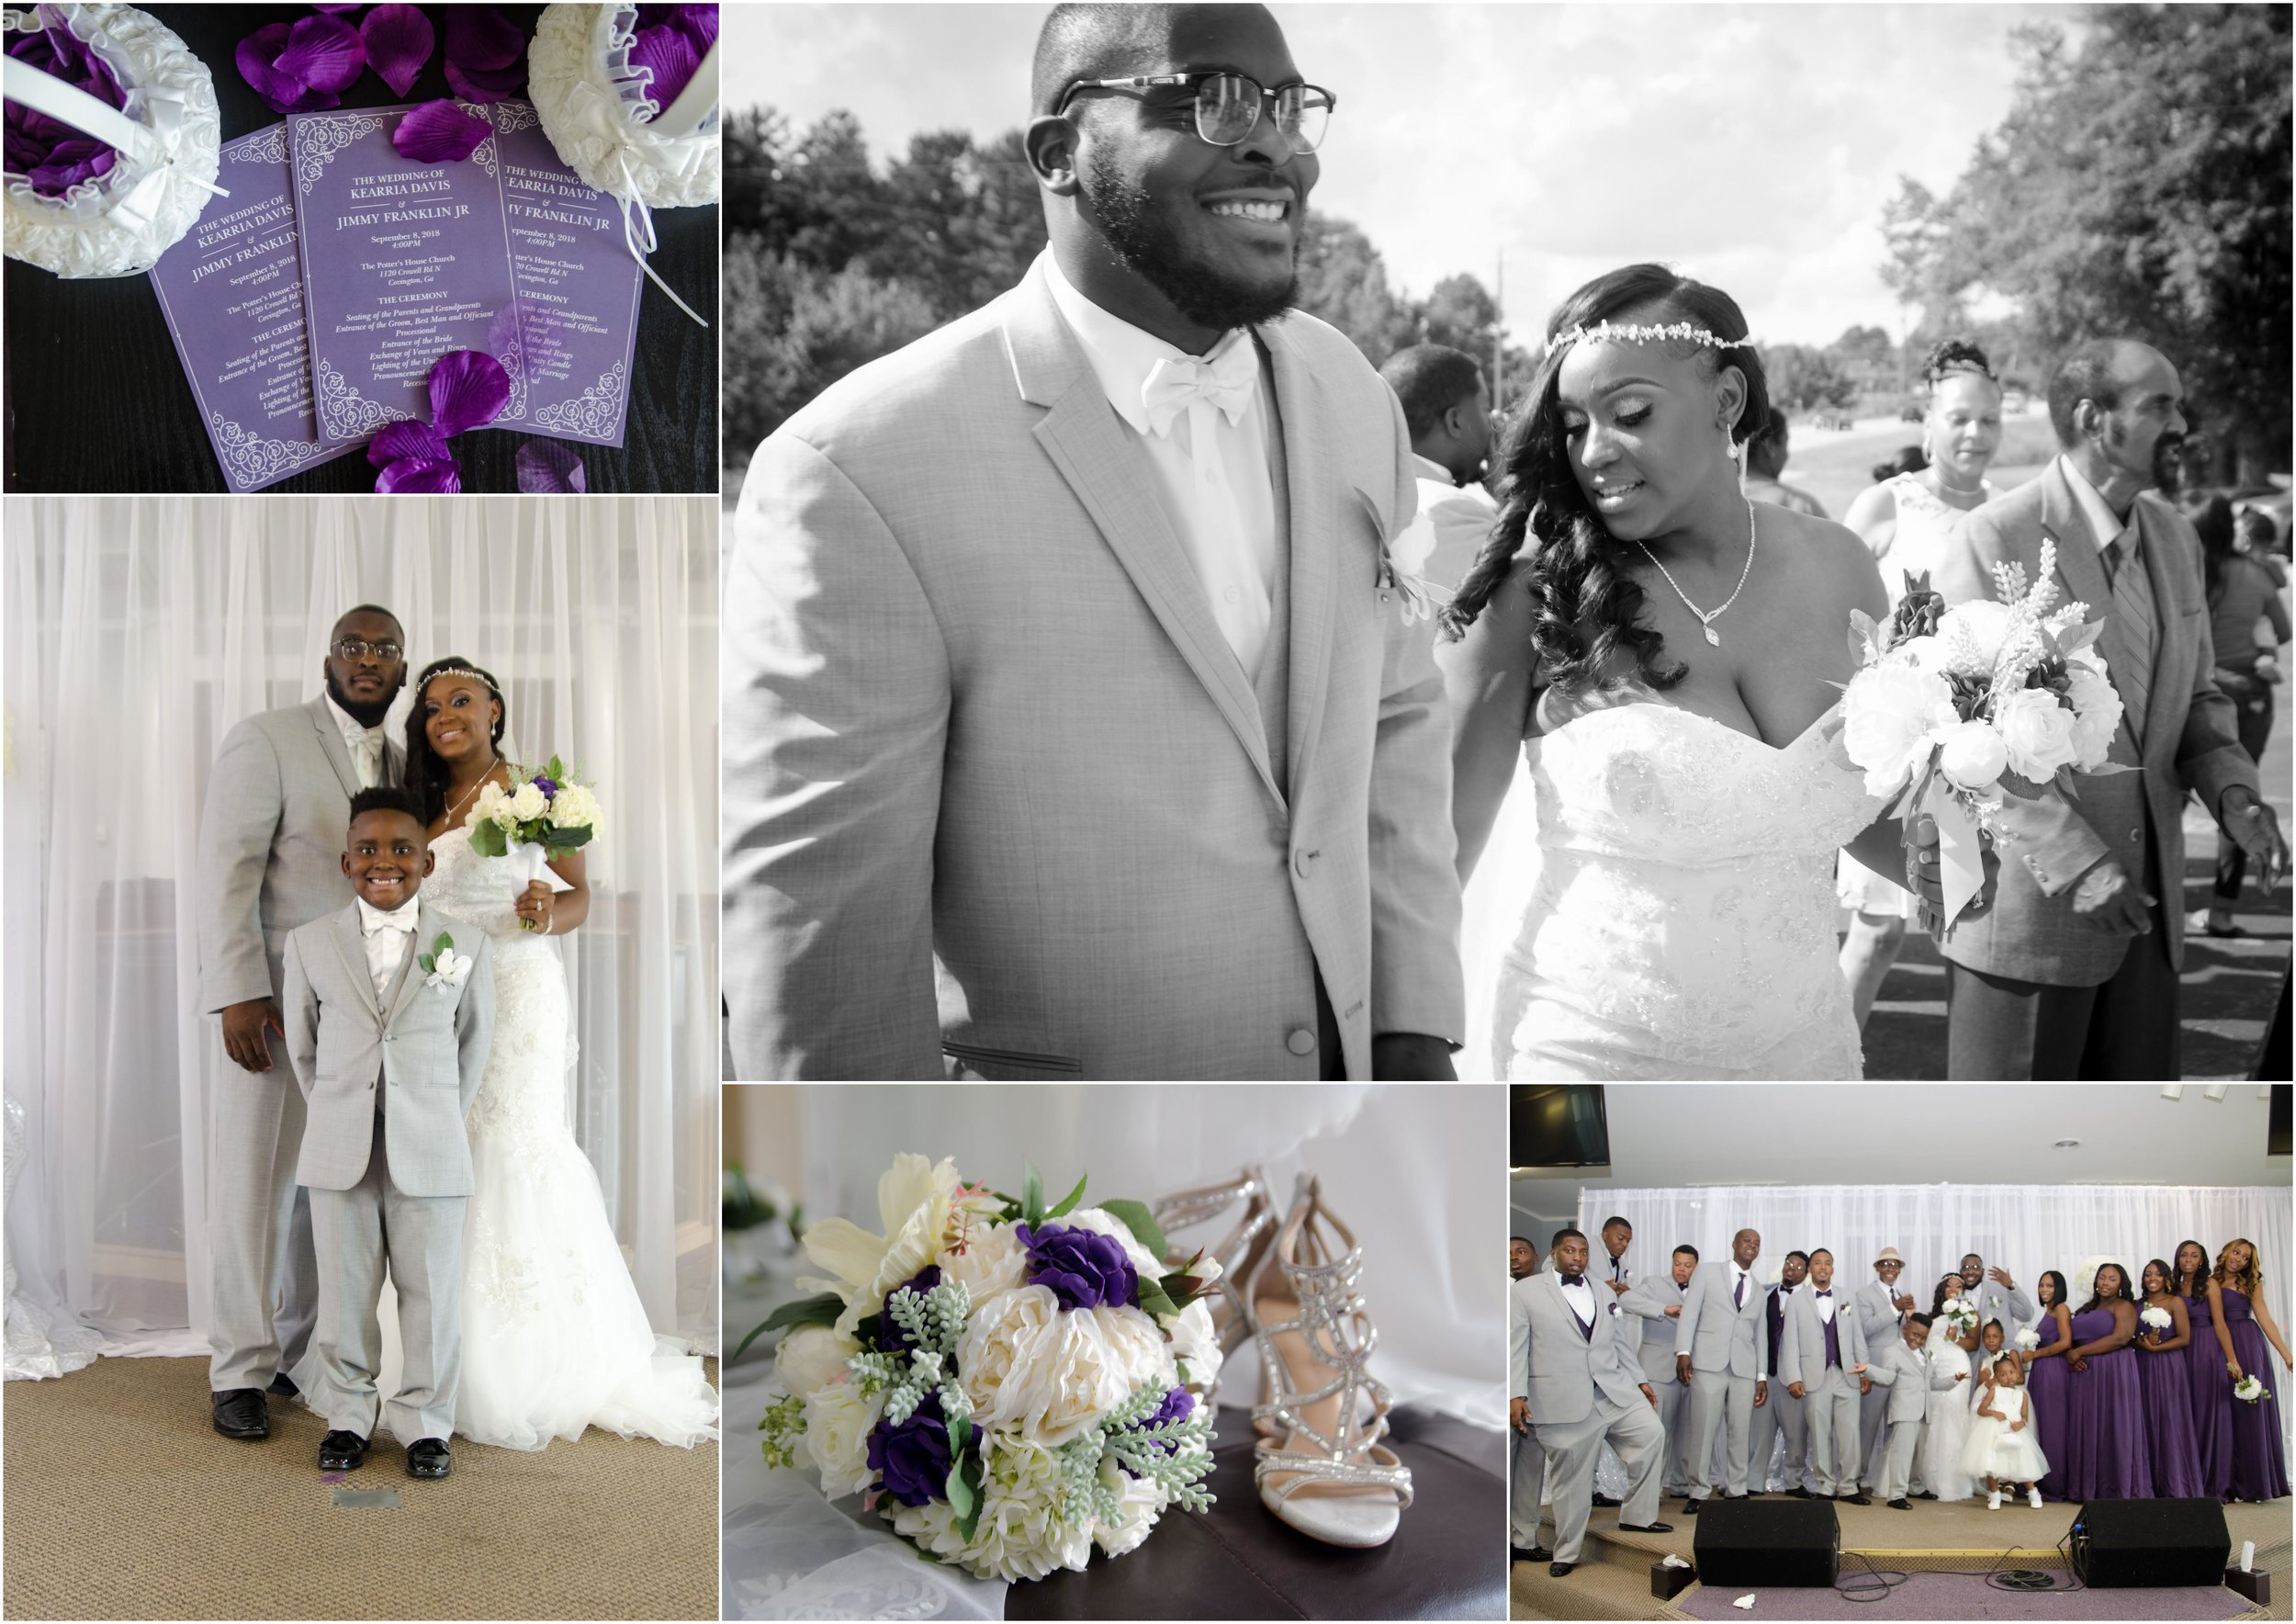 Kierra & Jimmy Franklin Wedding Ceremony - September 2018